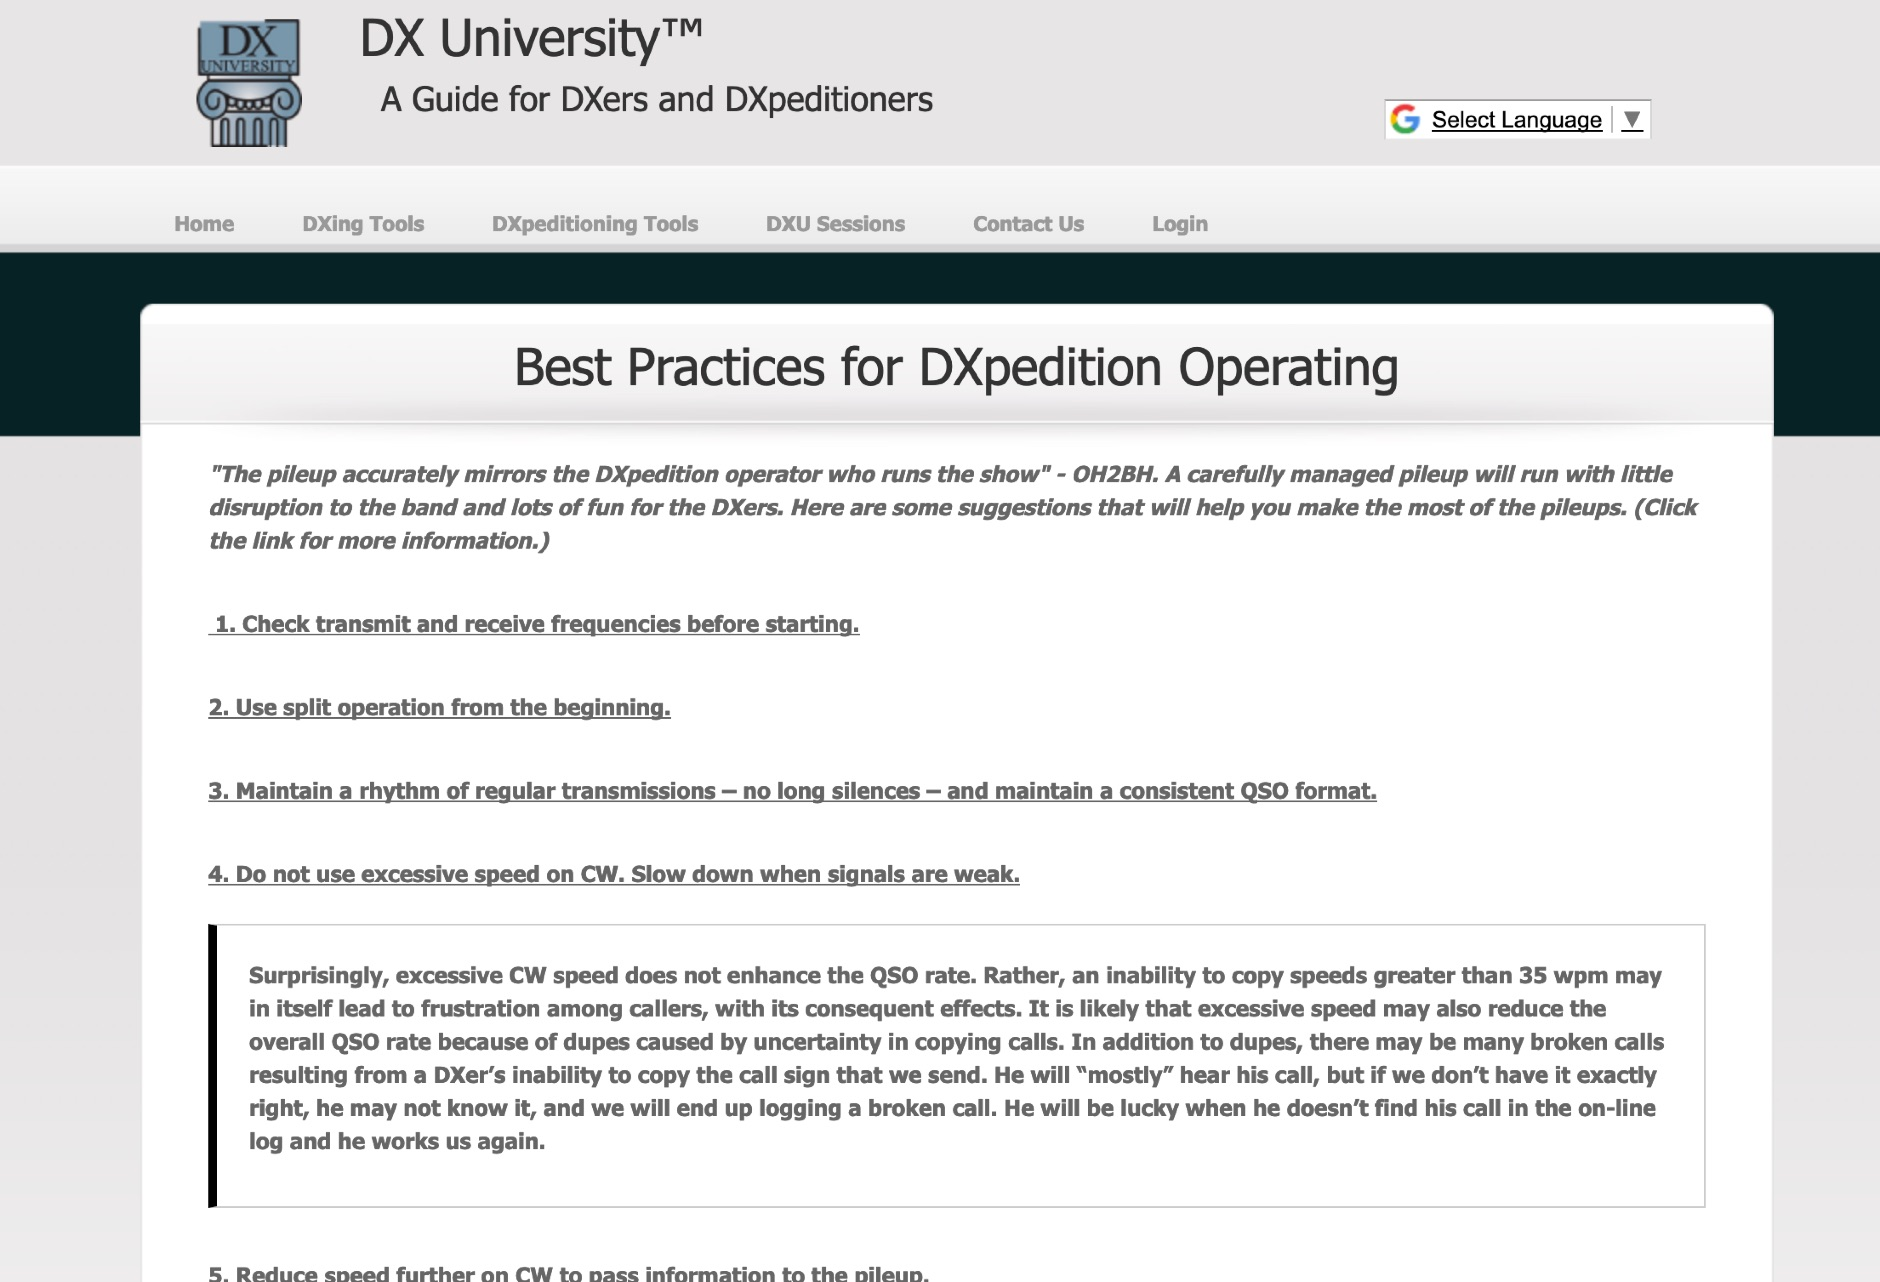 Best Practices for DXpedition Operating DX University